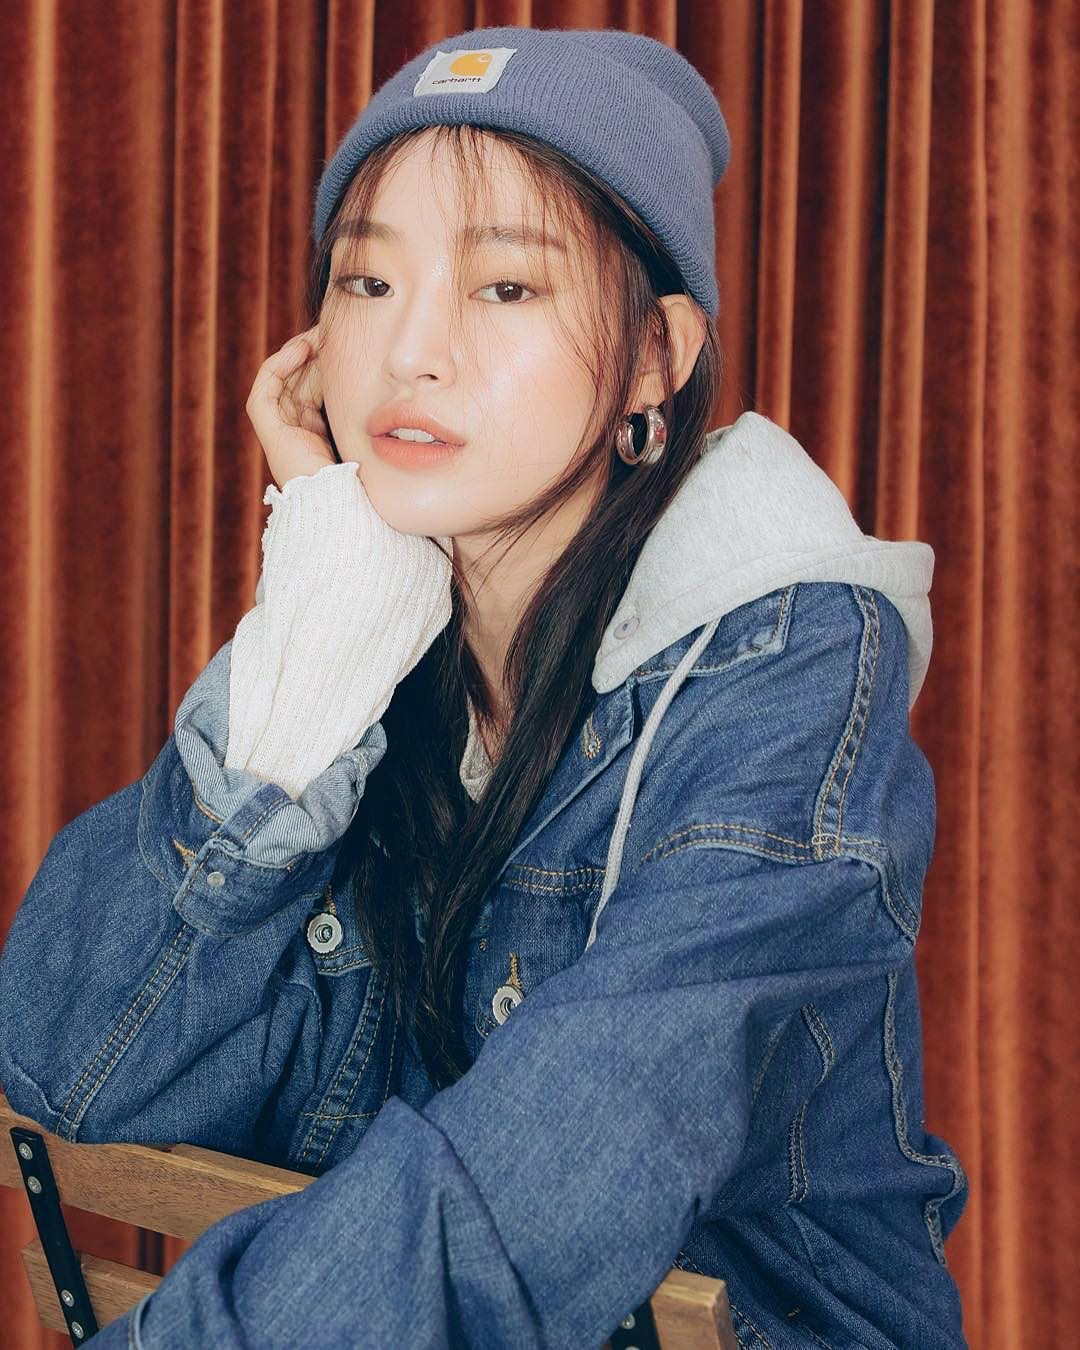 Grey Hoodie With Denim Jacket In Blue For Fall 2020